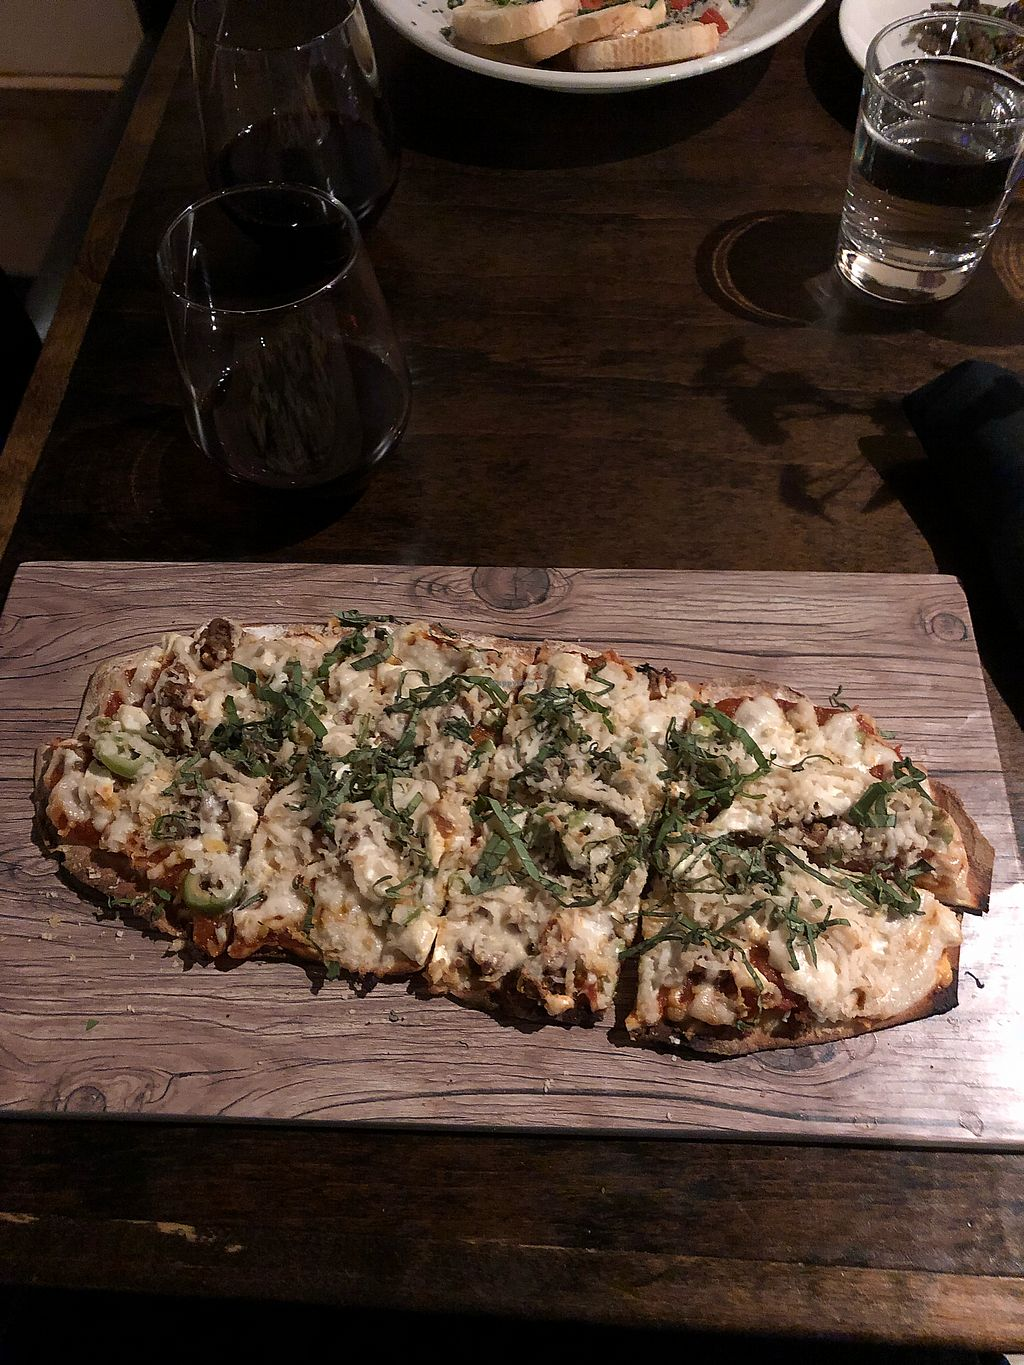 """Photo of Seasons Plant Based Bistro  by <a href=""""/members/profile/Levi"""">Levi</a> <br/>Flatbread <br/> January 7, 2018  - <a href='/contact/abuse/image/104318/344013'>Report</a>"""